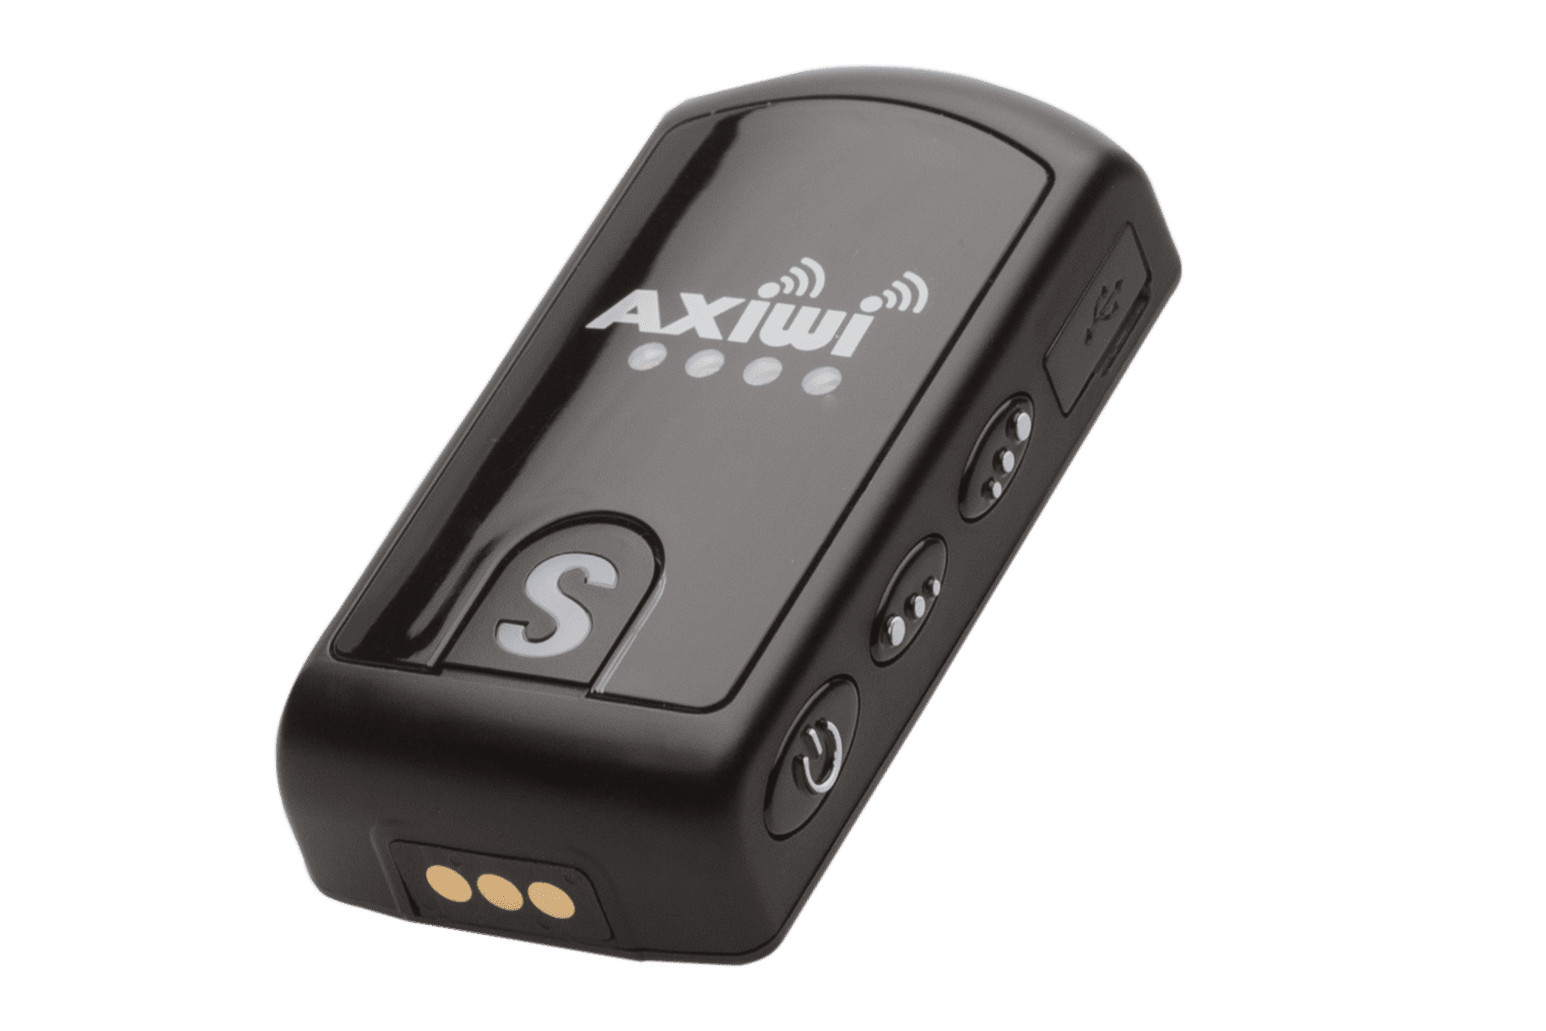 axiwi-at-320-duplex-communicatie-systeem